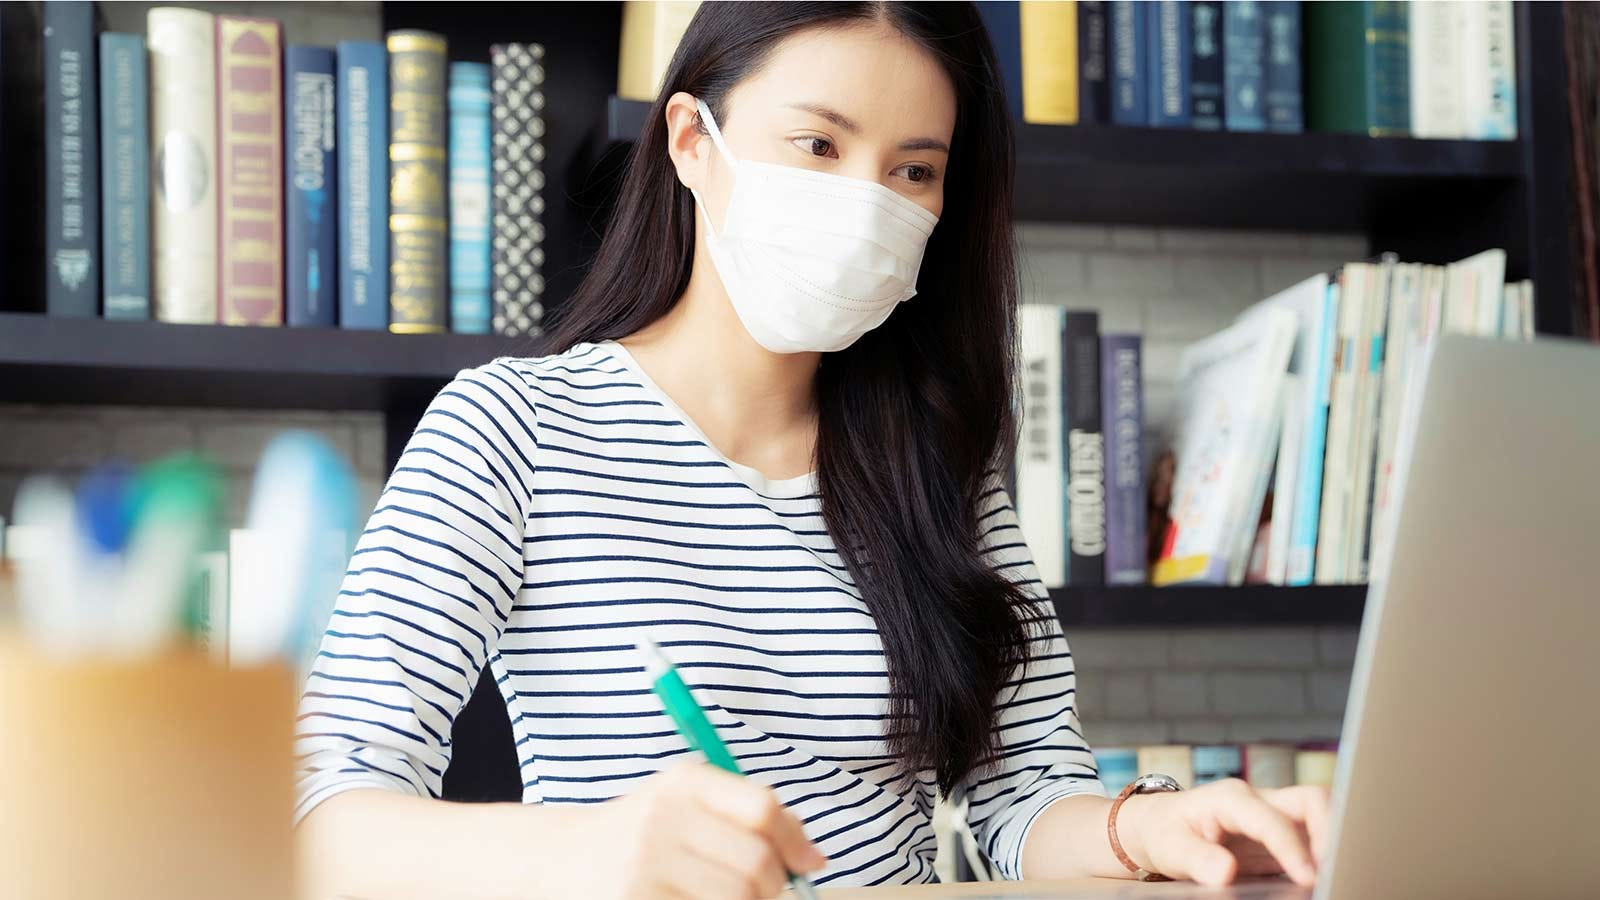 A young woman studying in a college library wearing a mask.